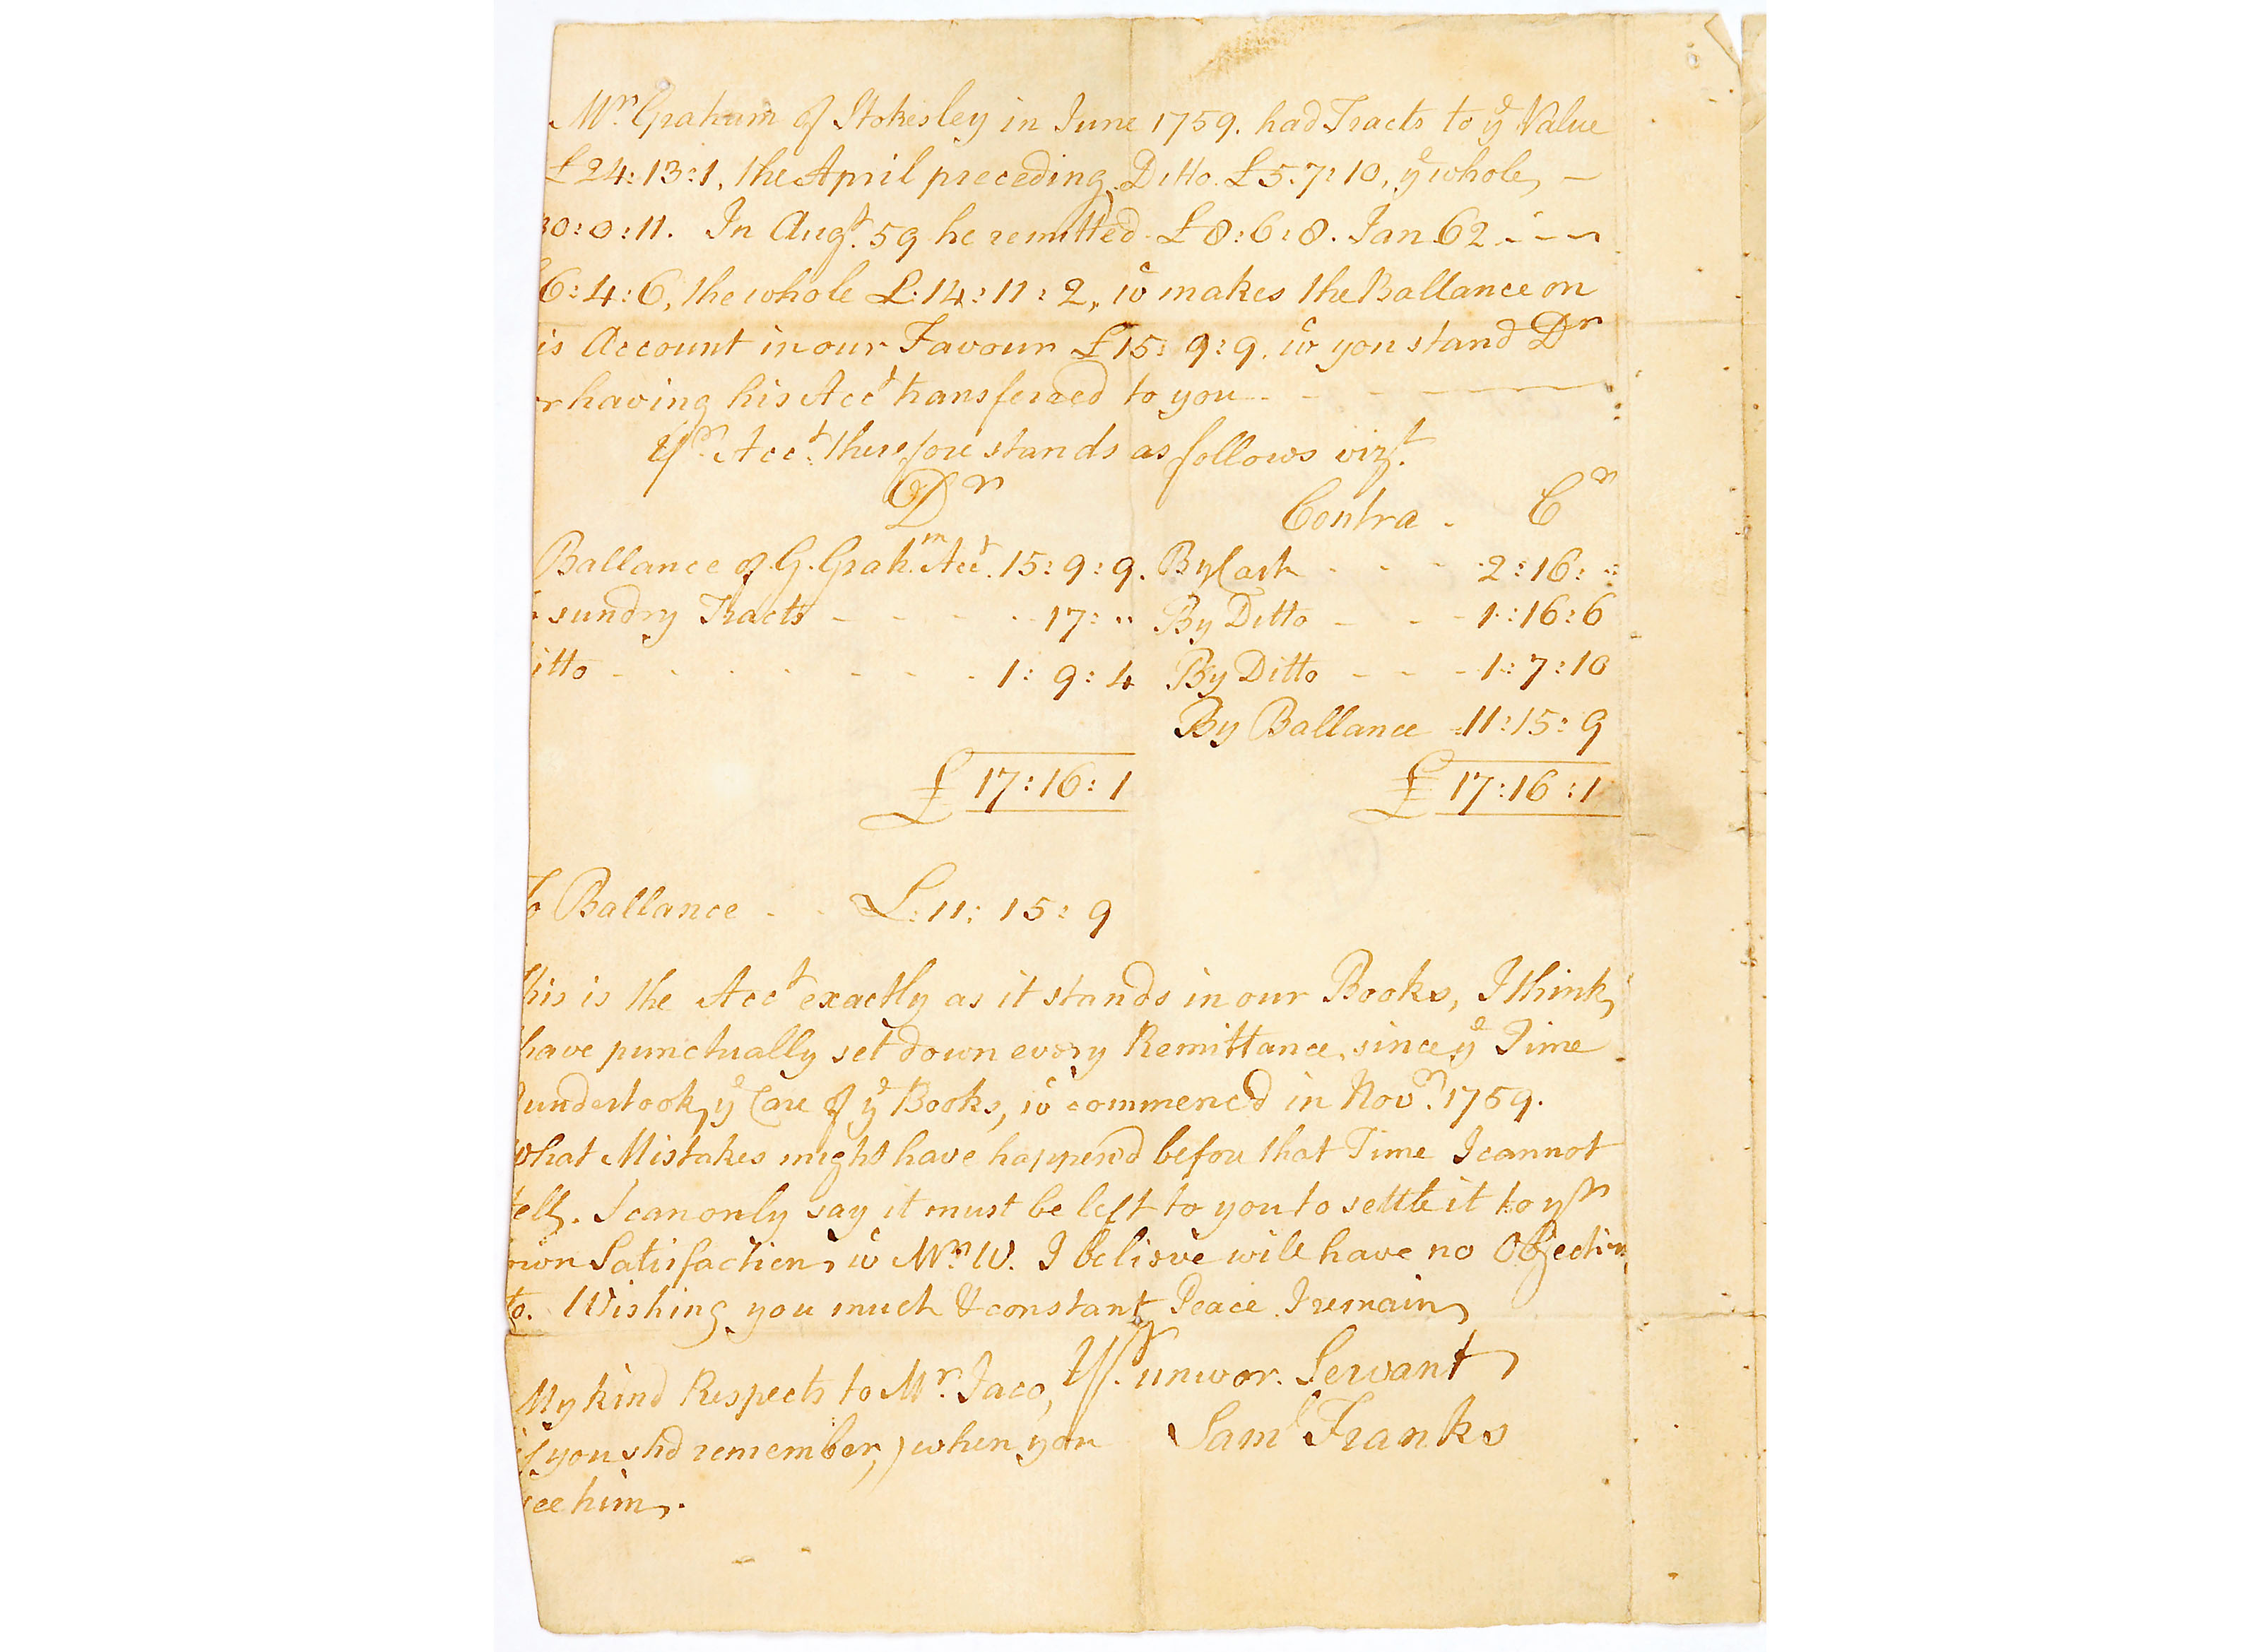 Letter from John Wesley to George Merryweather